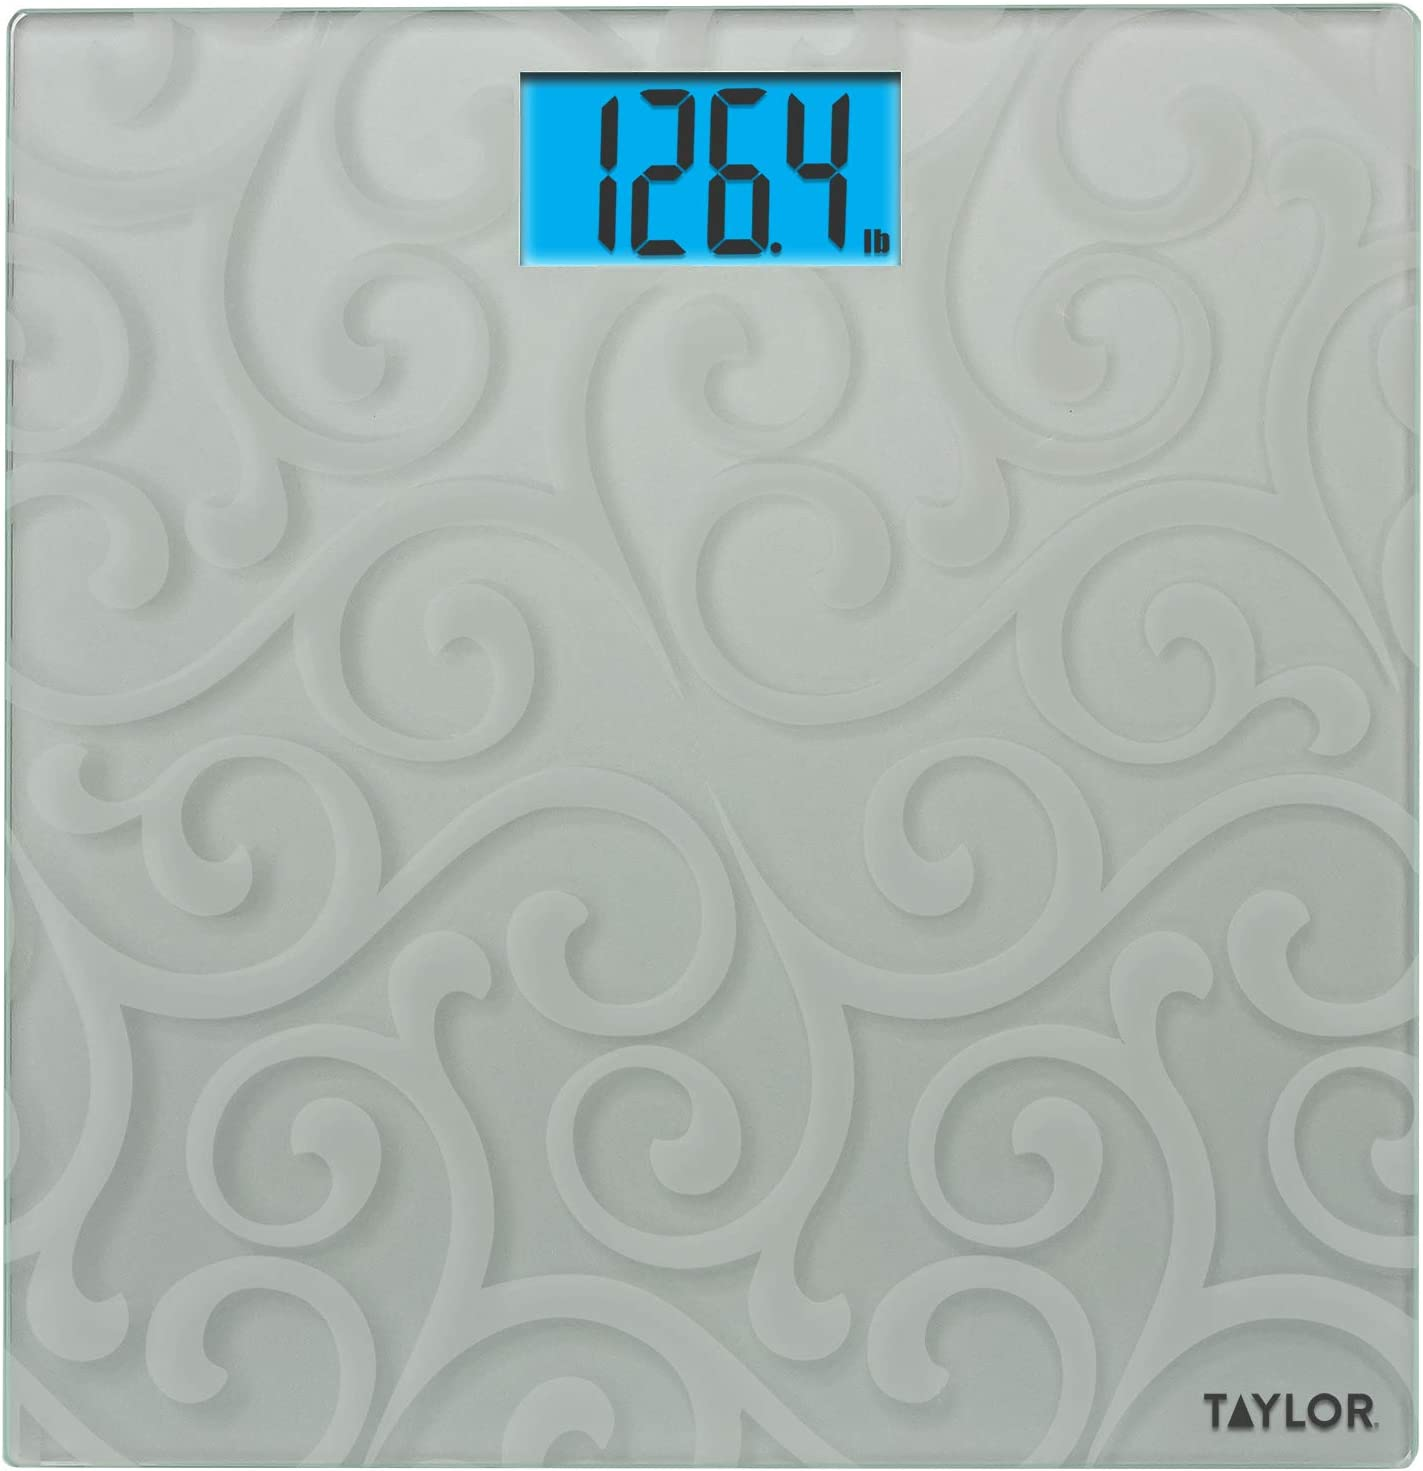 Taylor Precision Products Frosted Digital Glass Bath Scale, Silver